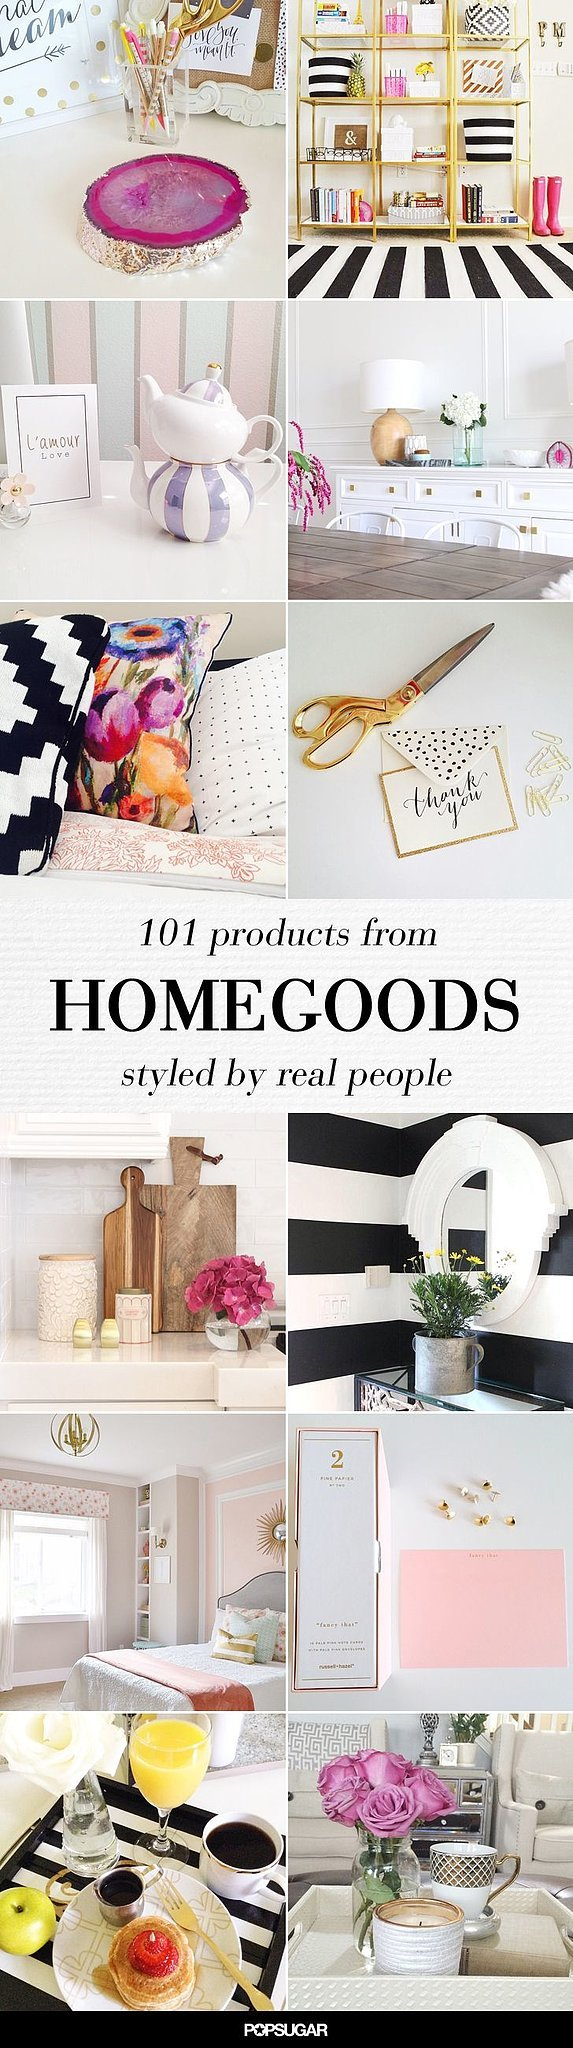 Amazing homegoods pieces 10 home decor ideas you 39 ll want for Home goods decorative accessories